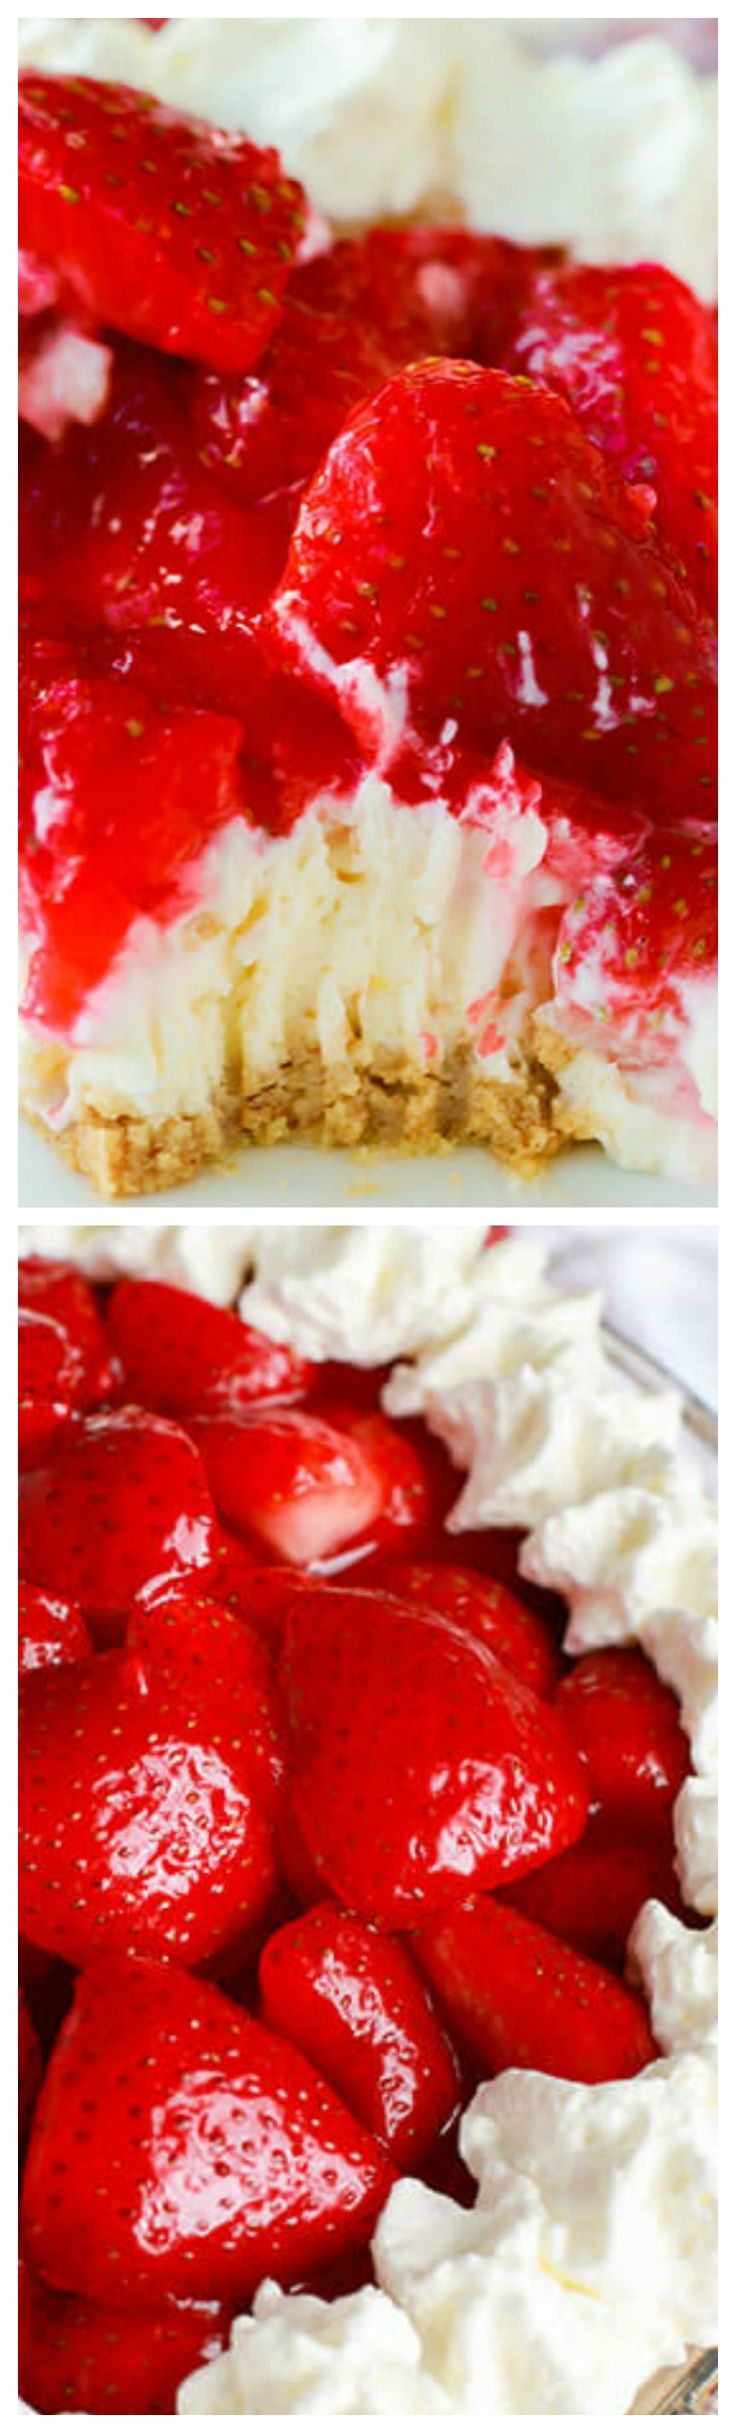 Easy Strawberry Cheesecake Pie ~ Delicious NO BAKE summer desserts... Rich and creamy cheesecake is topped with glazed fresh summer strawberries and a hint of lemon.